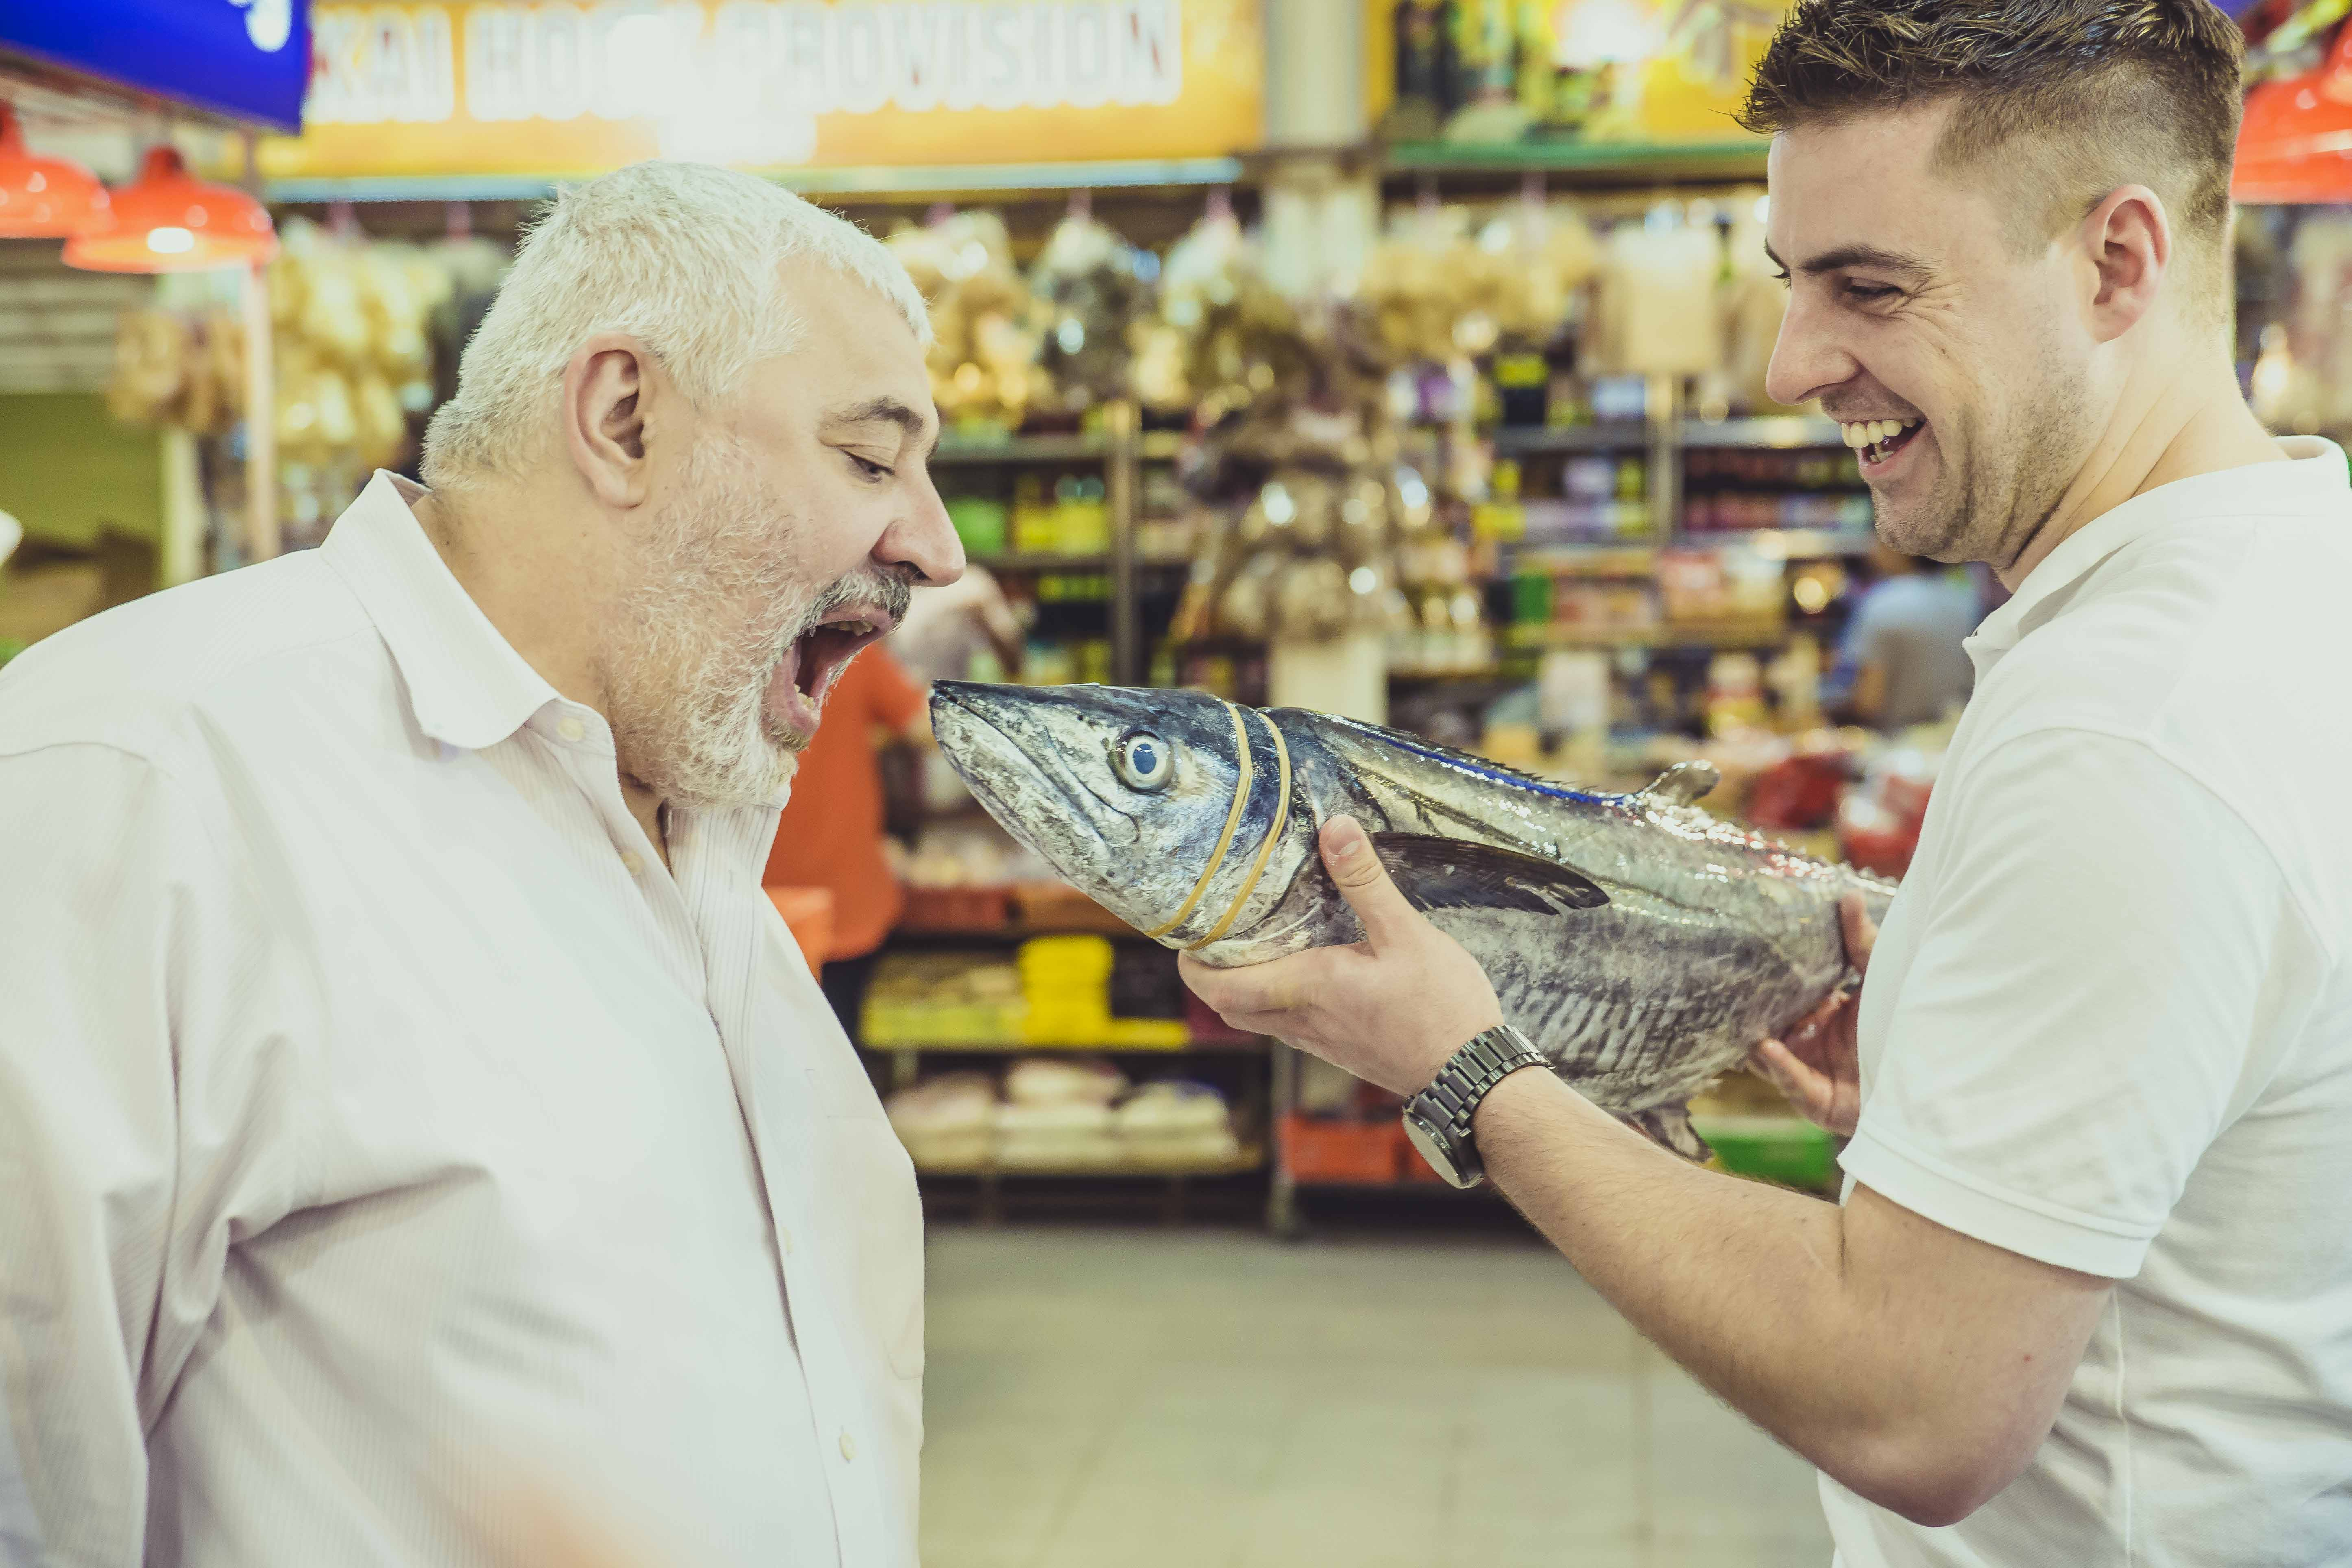 Umberto Bombana and Kirk Westaway show us how to choose ingredients like a chef